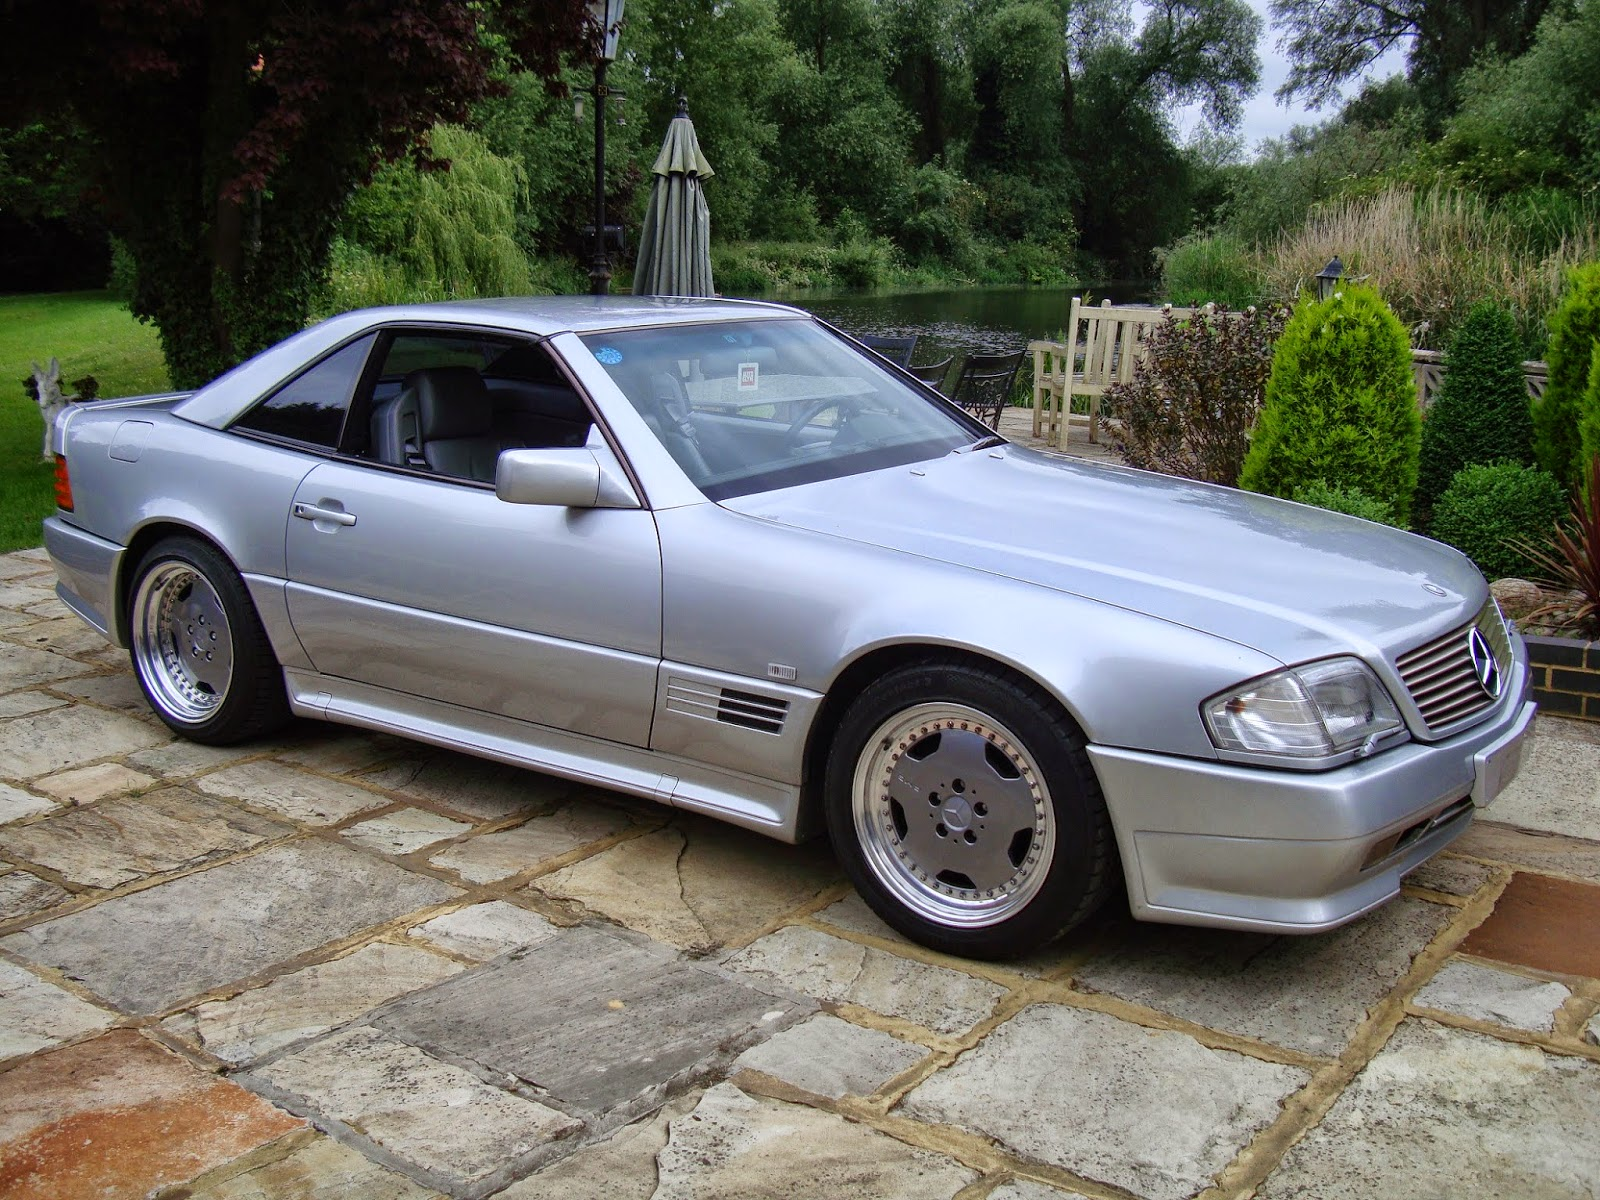 Mercedes Benz S W Relay Fuse Box Cover A further Lx Un Nov further Xahh B X as well  furthermore Mercedes R Sl Amg. on 00 s500 fuse box location